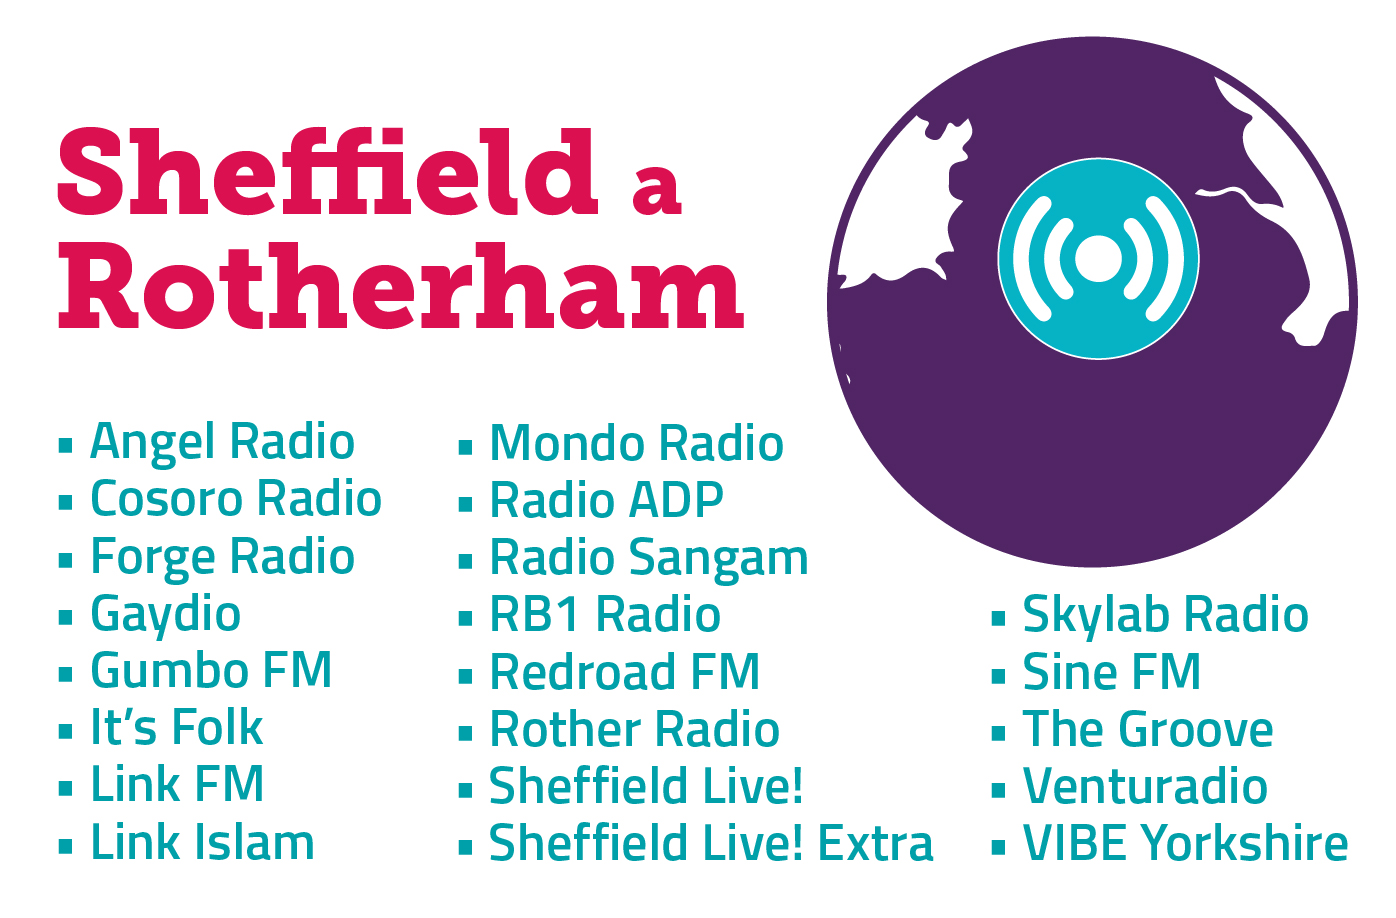 Stations launching in Sheffield and Rotherham.